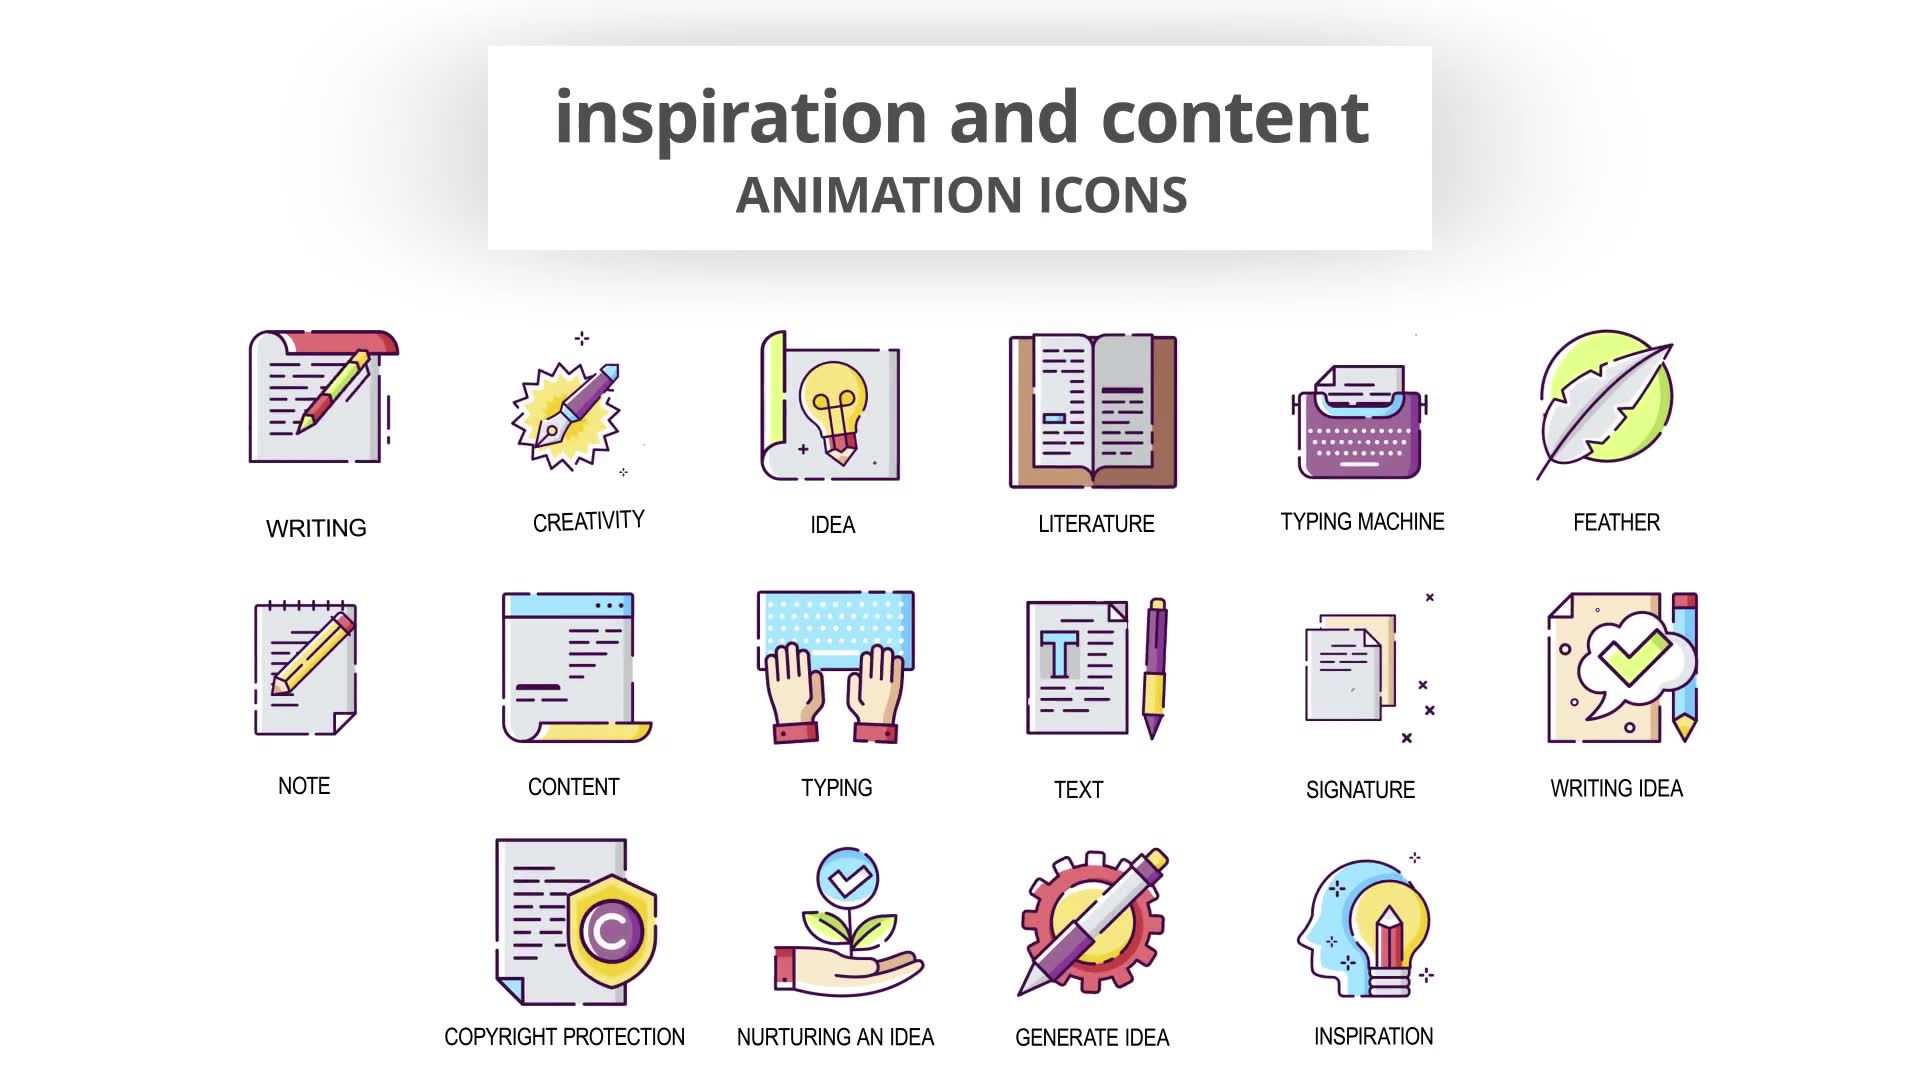 Inspiration & Content Animation Icons Videohive 30041554 After Effects Image 6